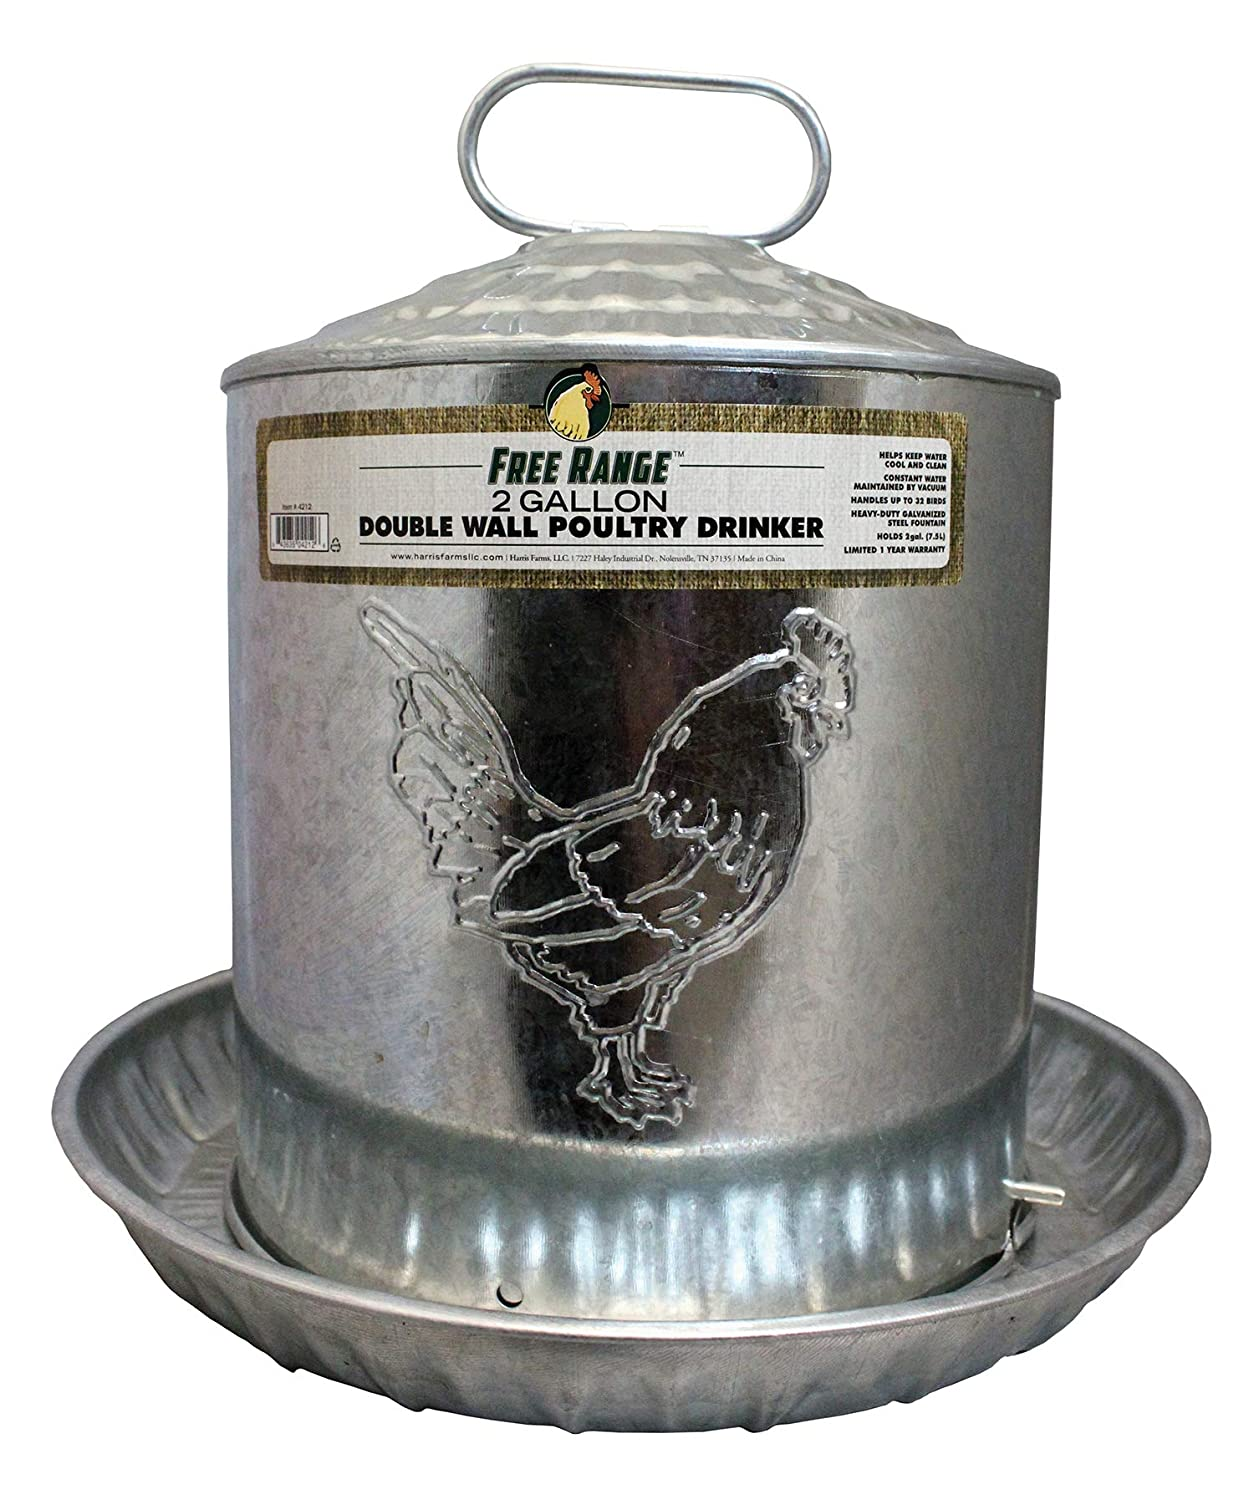 Harris Farms Galvanized Double Wall Poultry Drinker 2 Gallon